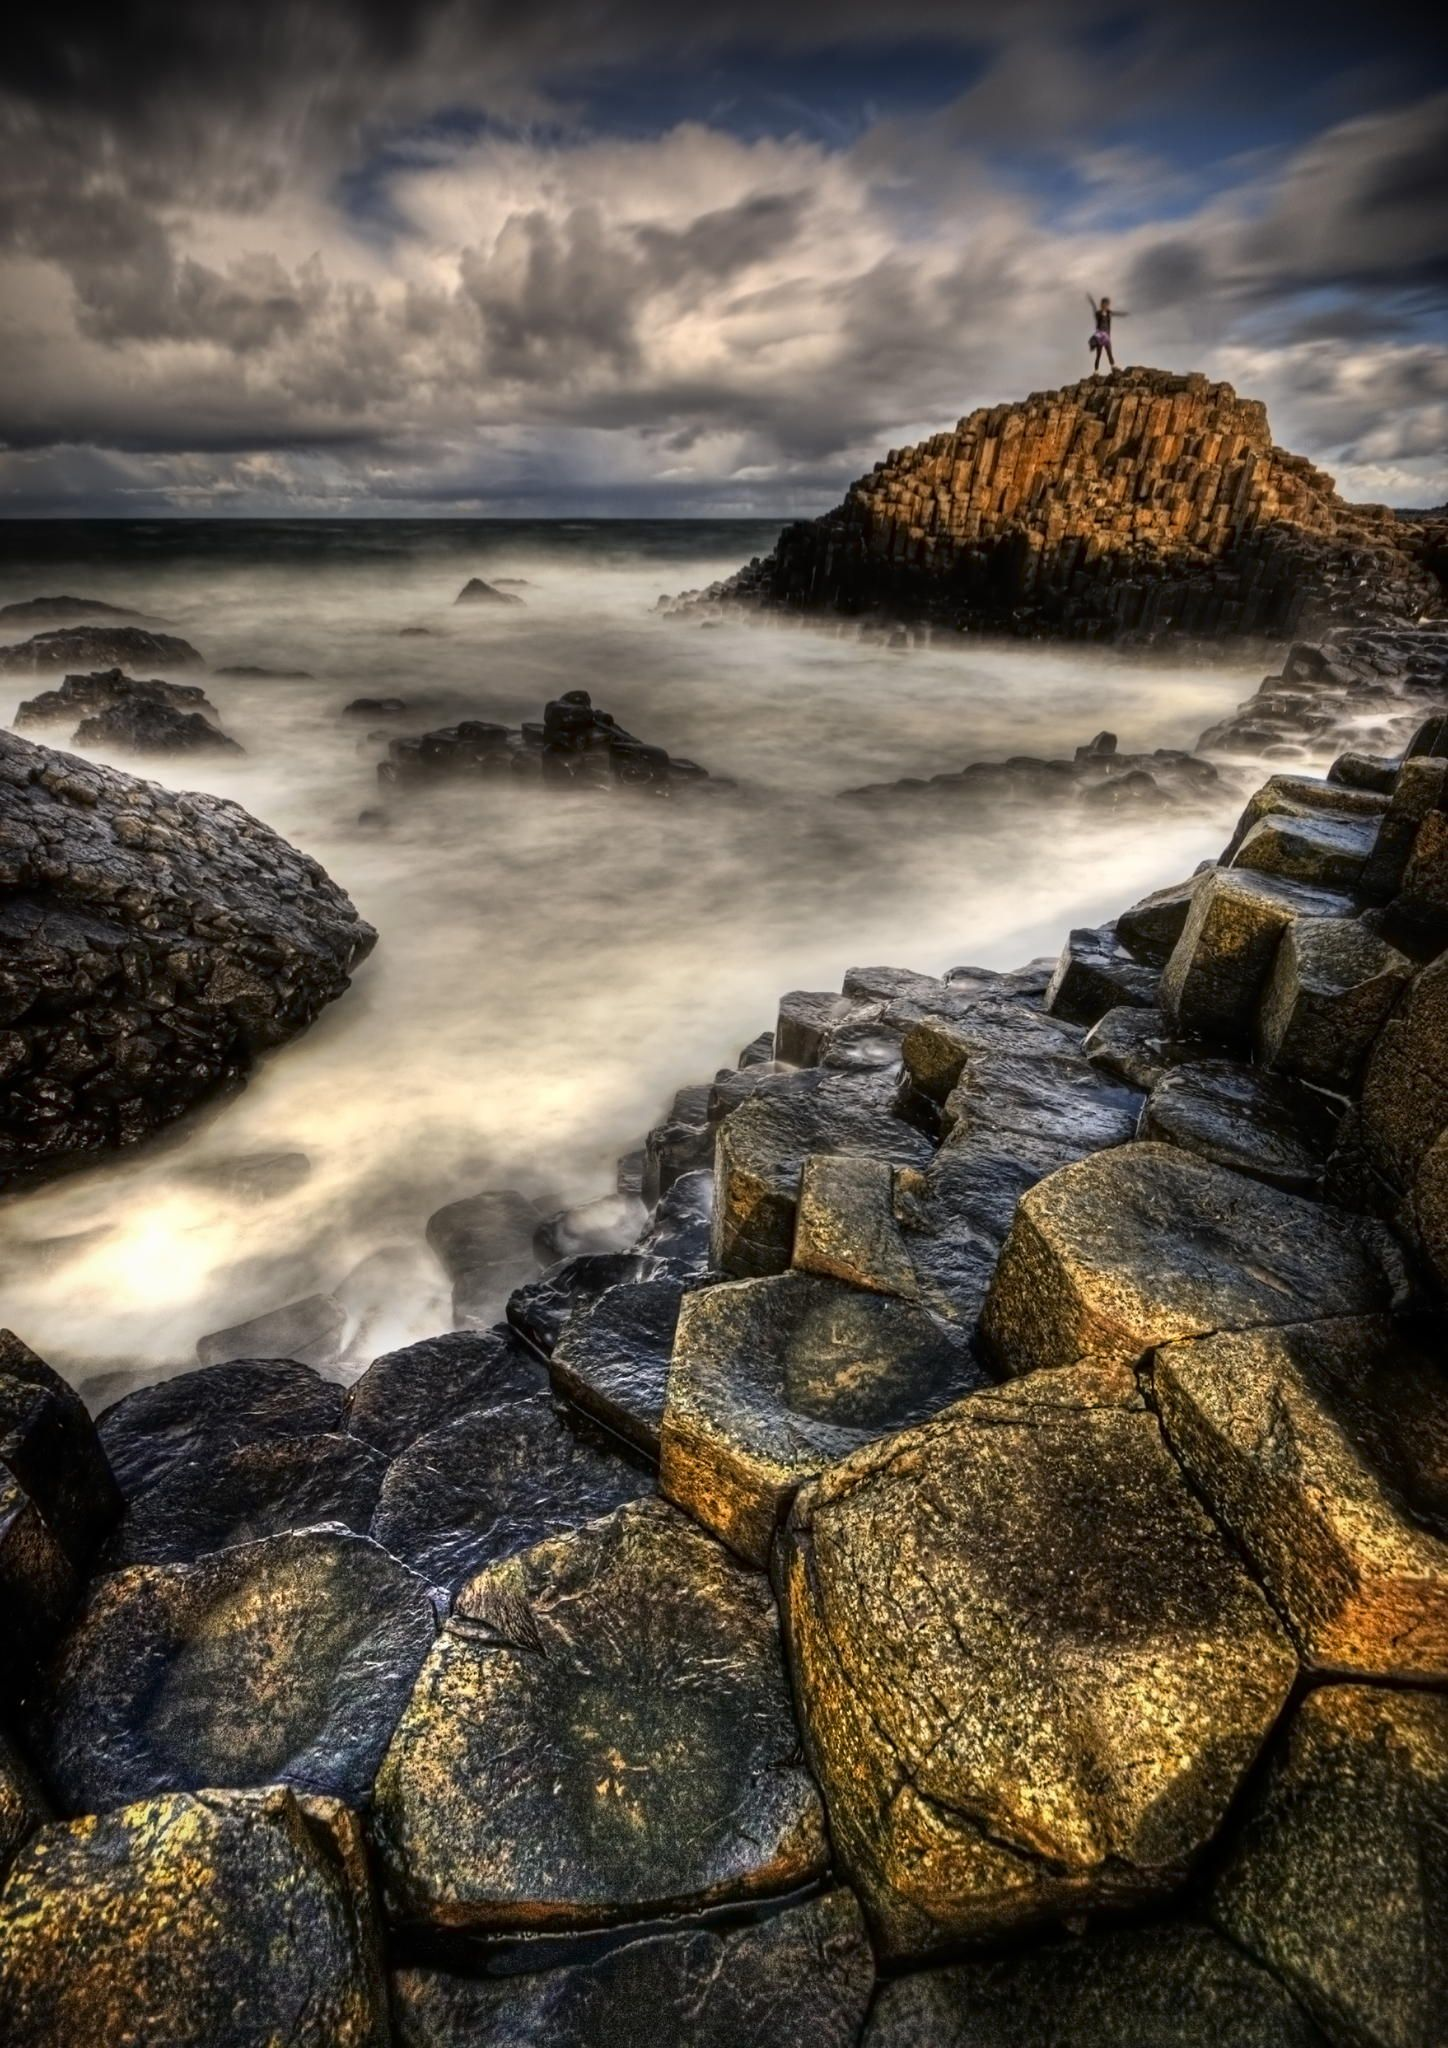 icarus by DeaRt Photography on 500px Icarus, Ireland